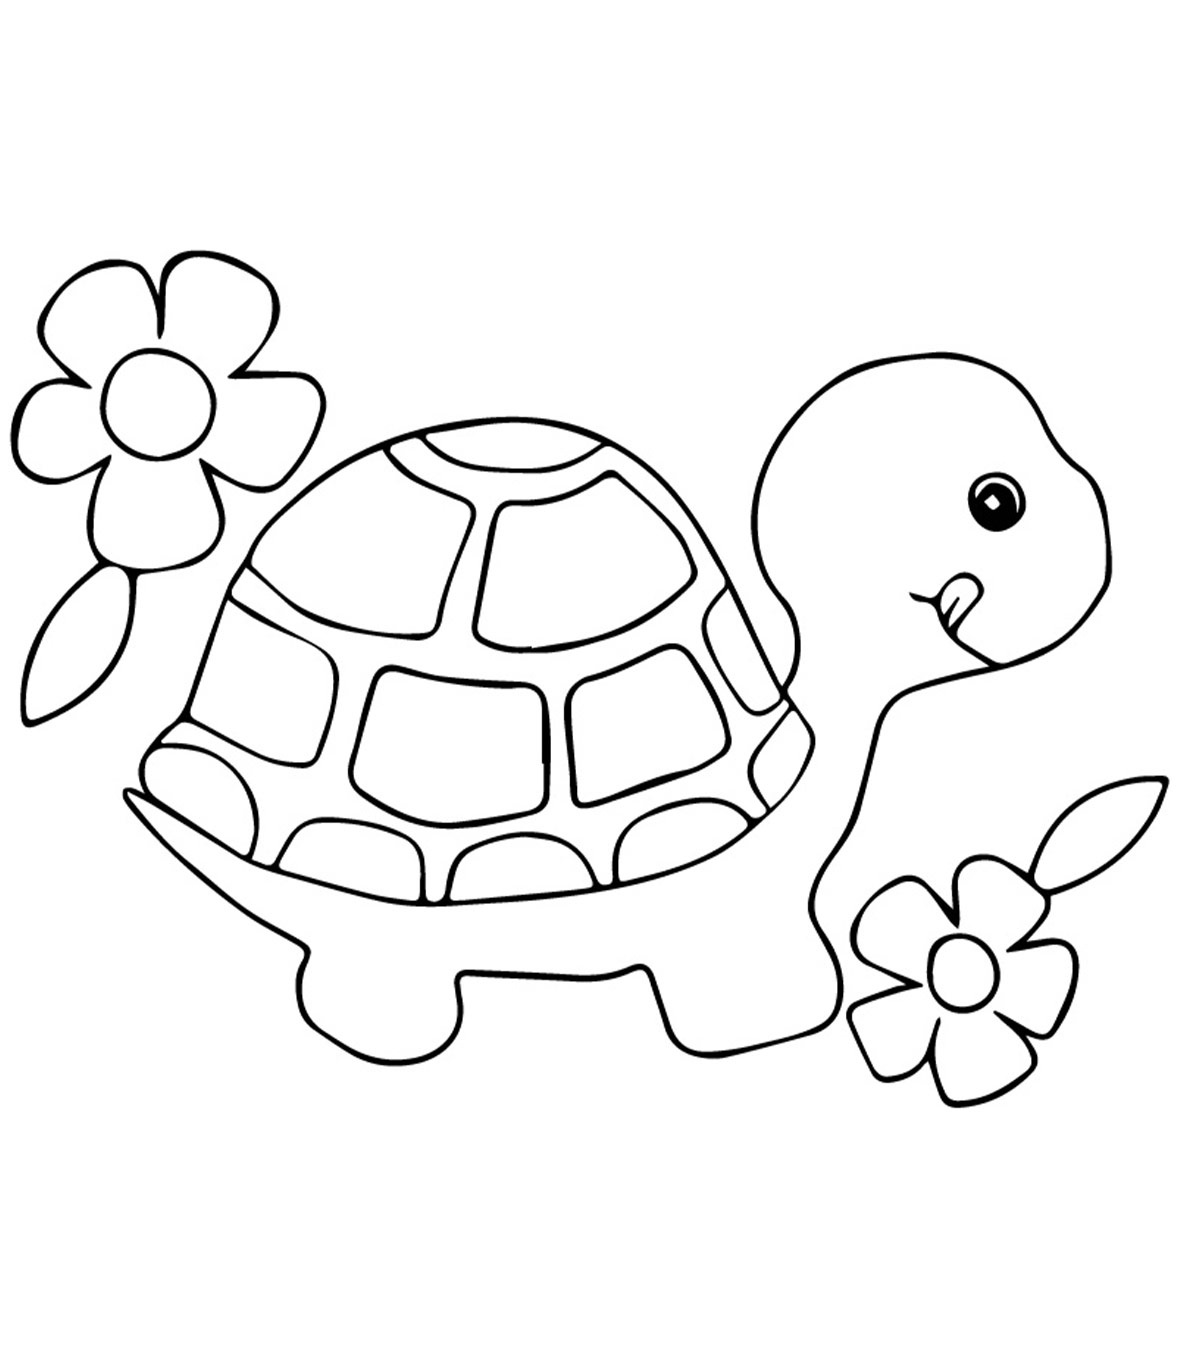 turtle colouring sheets animal coloring pages momjunction turtle sheets colouring